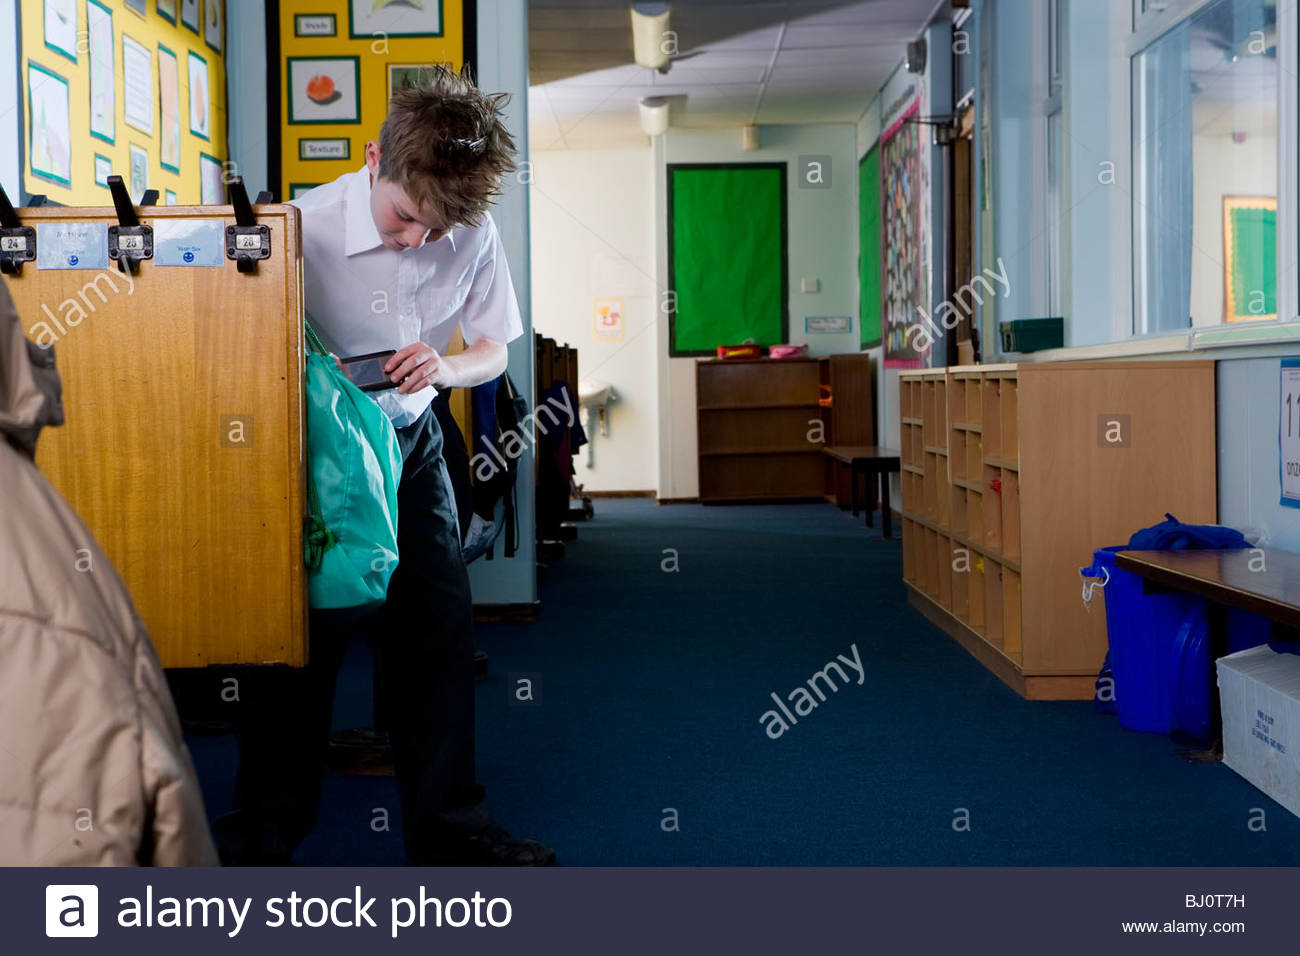 School boy taking something from bag in cloakroom - Stock Image